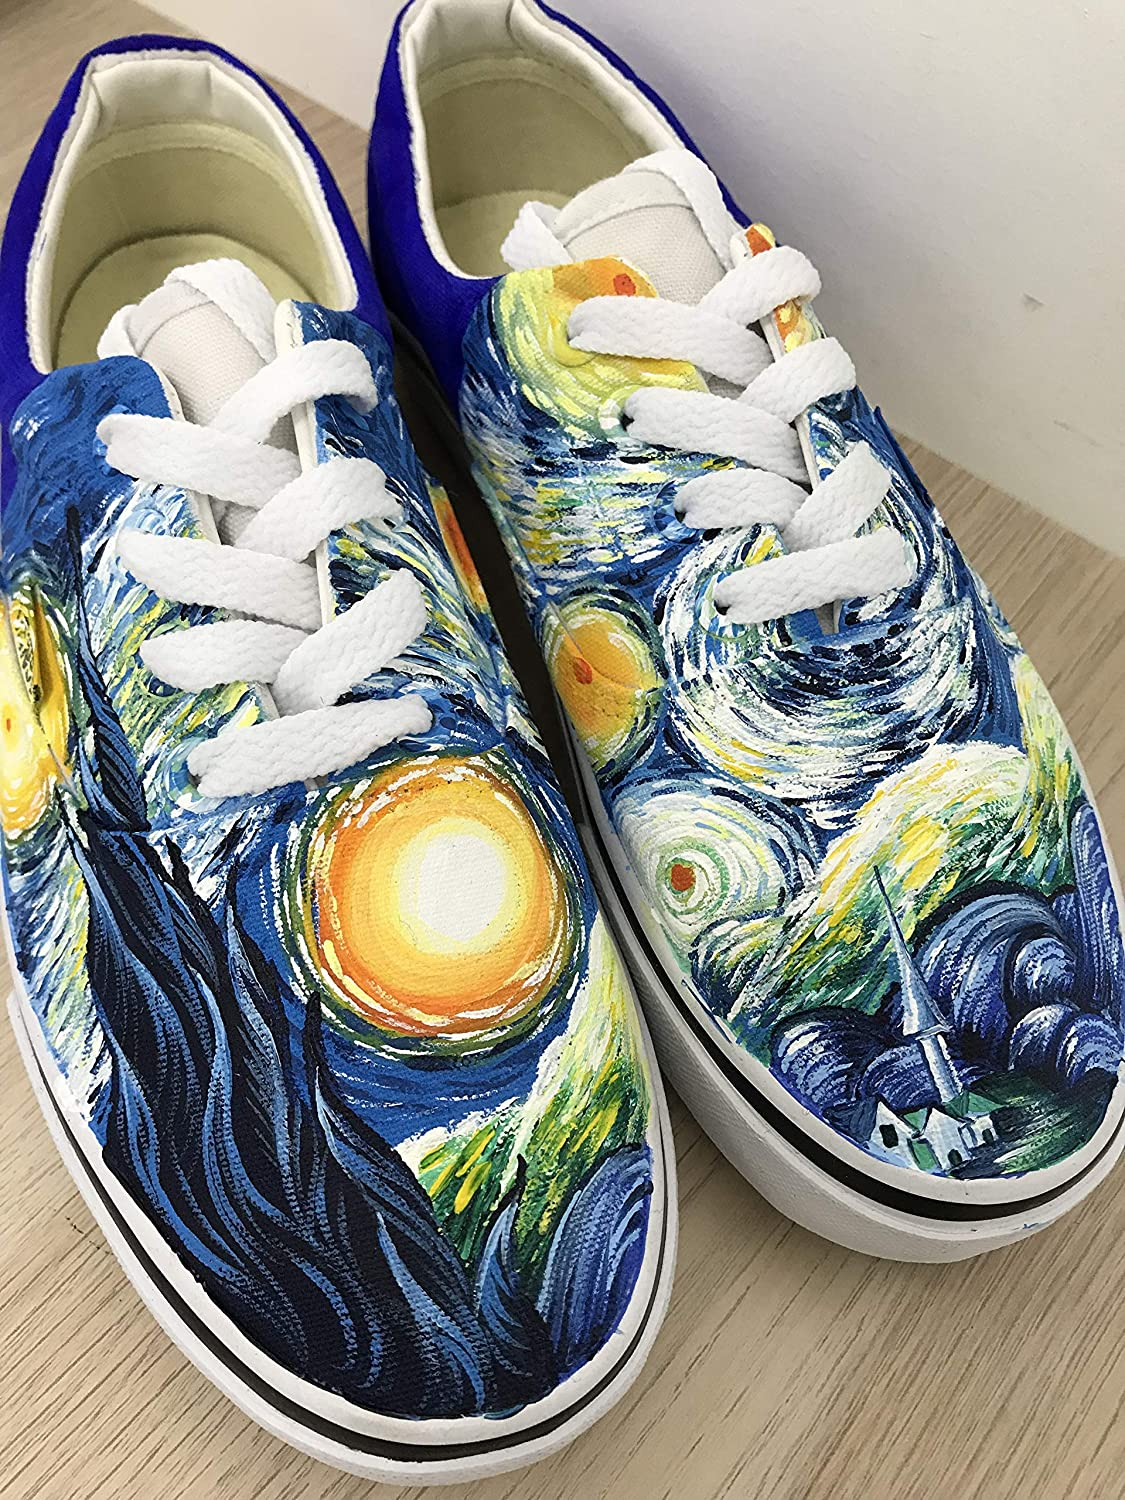 9747d078c0 The Starry Night Vans Authentic Van Gogh Starry Night Vans Shoes Custom  Shoes Vans Authentic Custom Hand Painted Shoes Hand Painted Vans Authentic  Custom ...